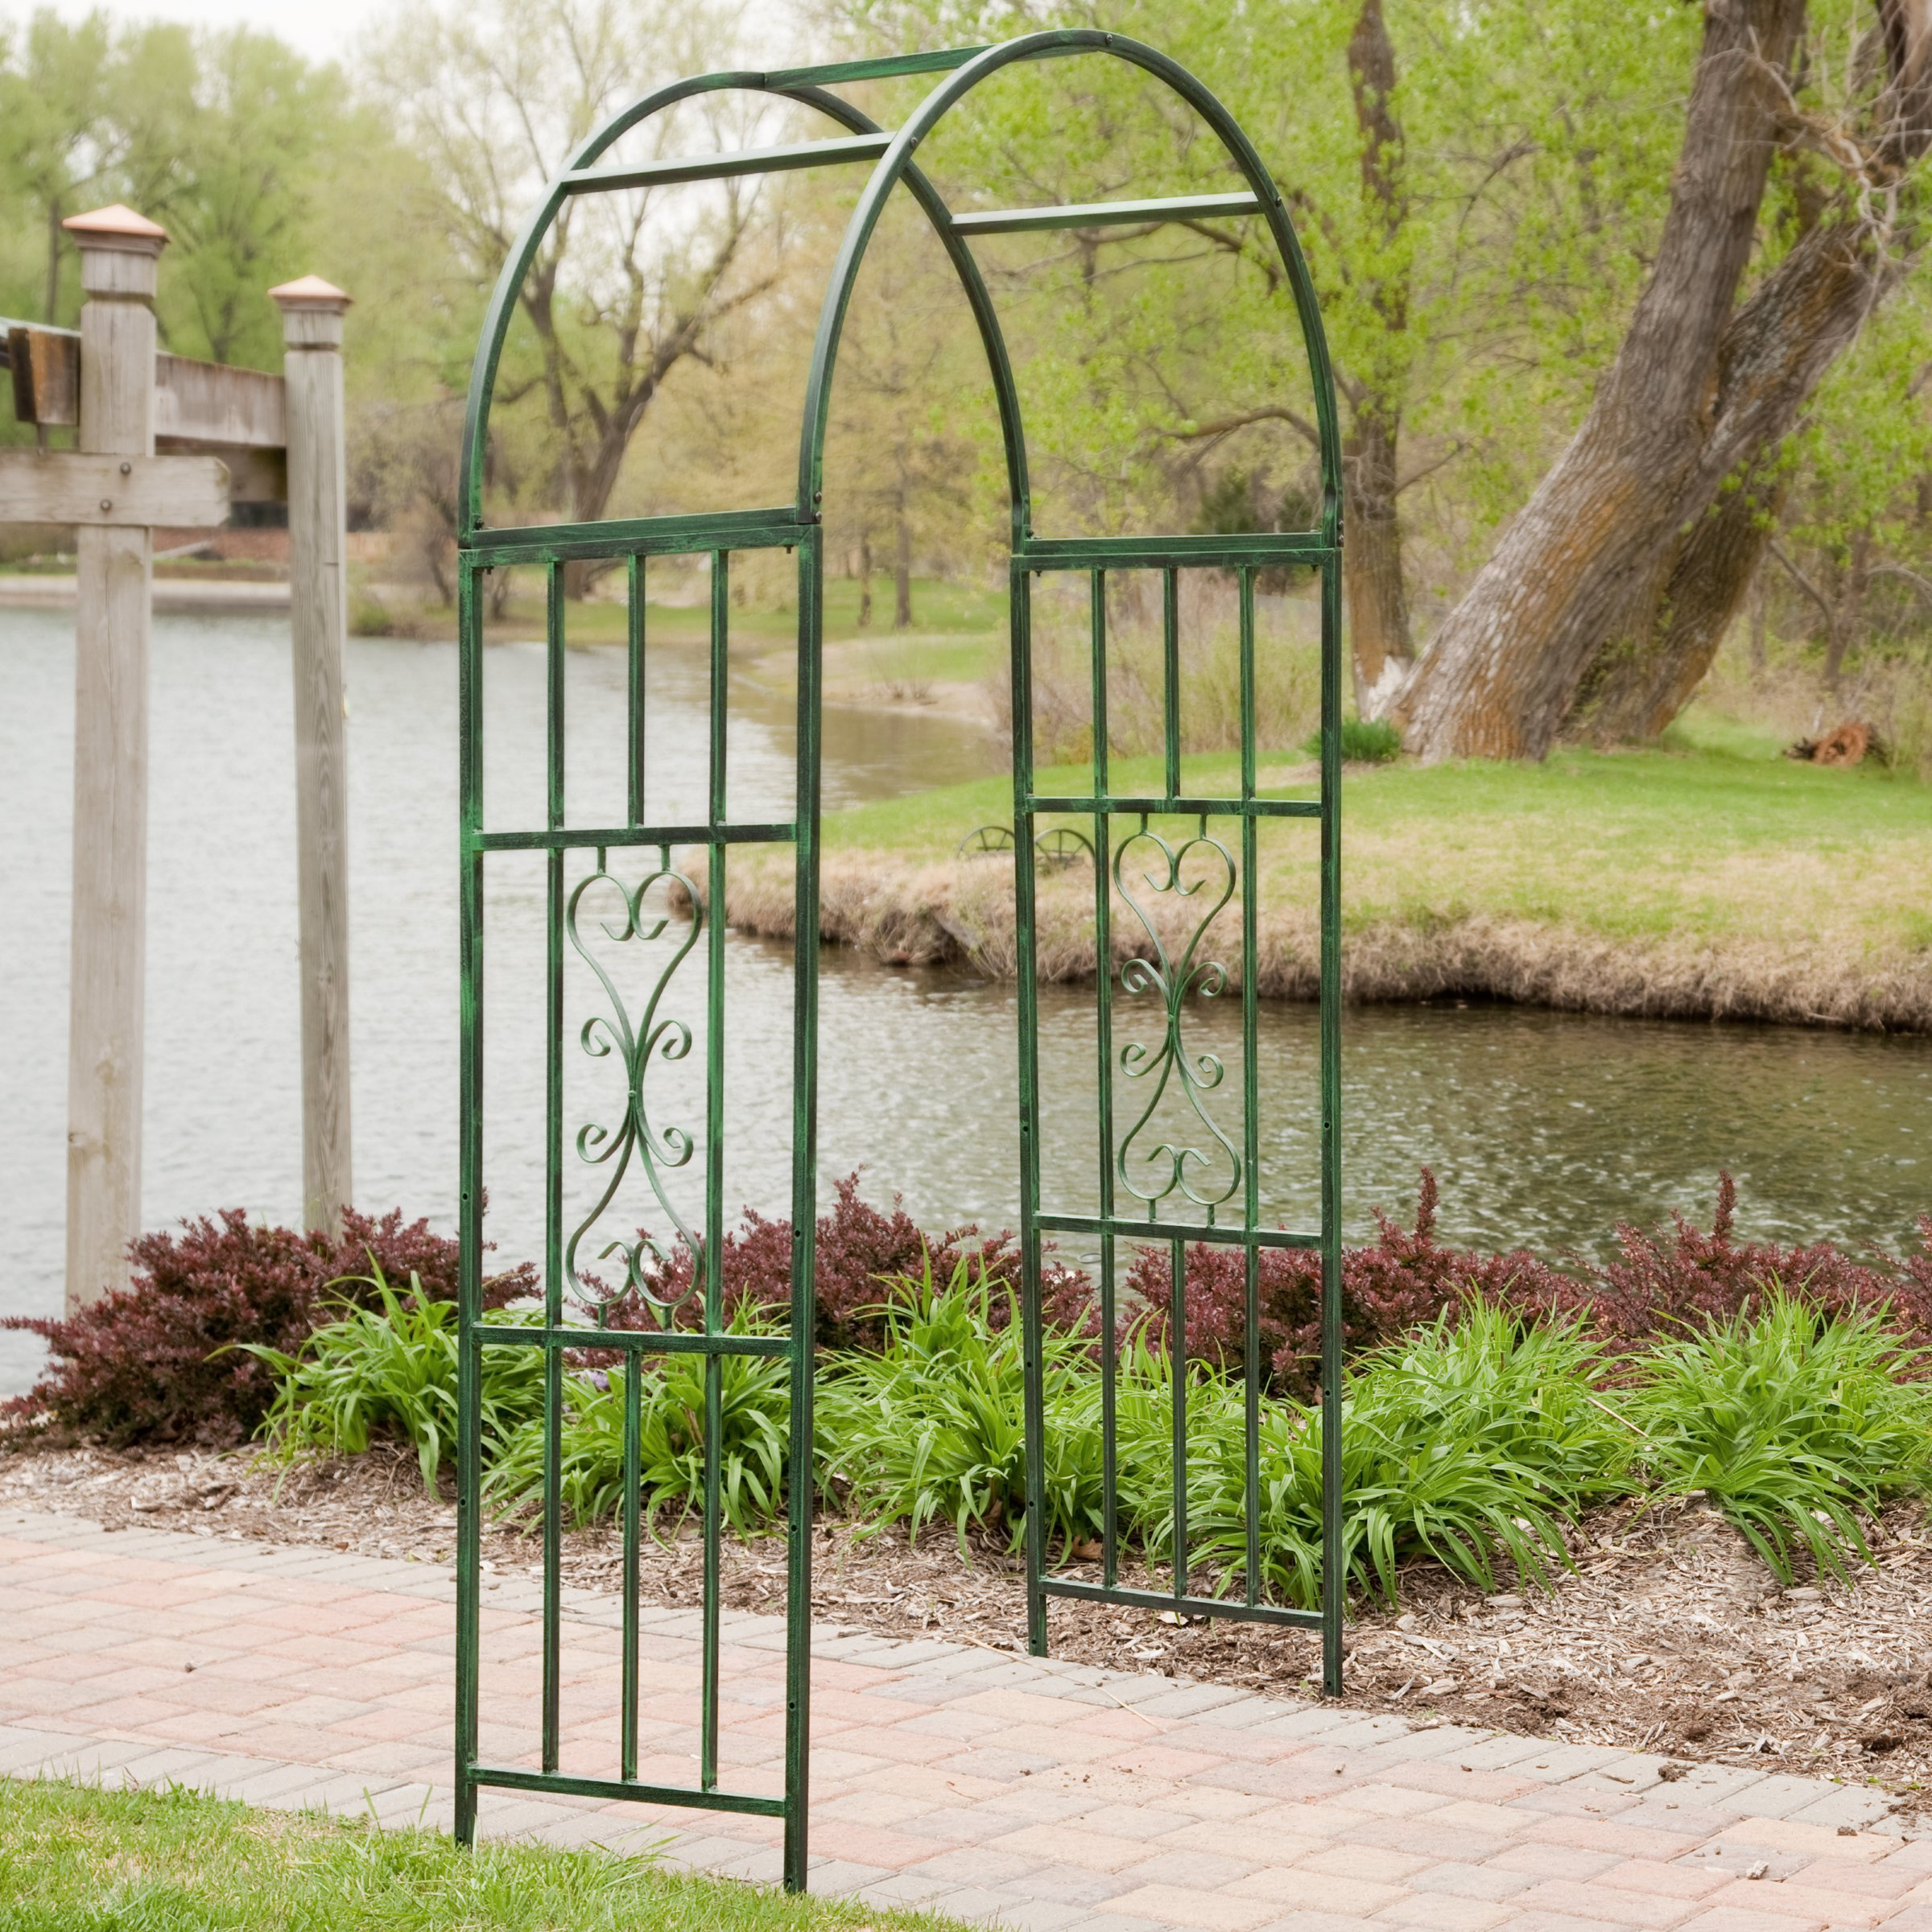 Steel Outdoor Garden Arbor (7-ft.) in Powder Coated Black Verdigris Finish with Intricate Scrollwork Design - Ideal for Climbing Vines and Plants